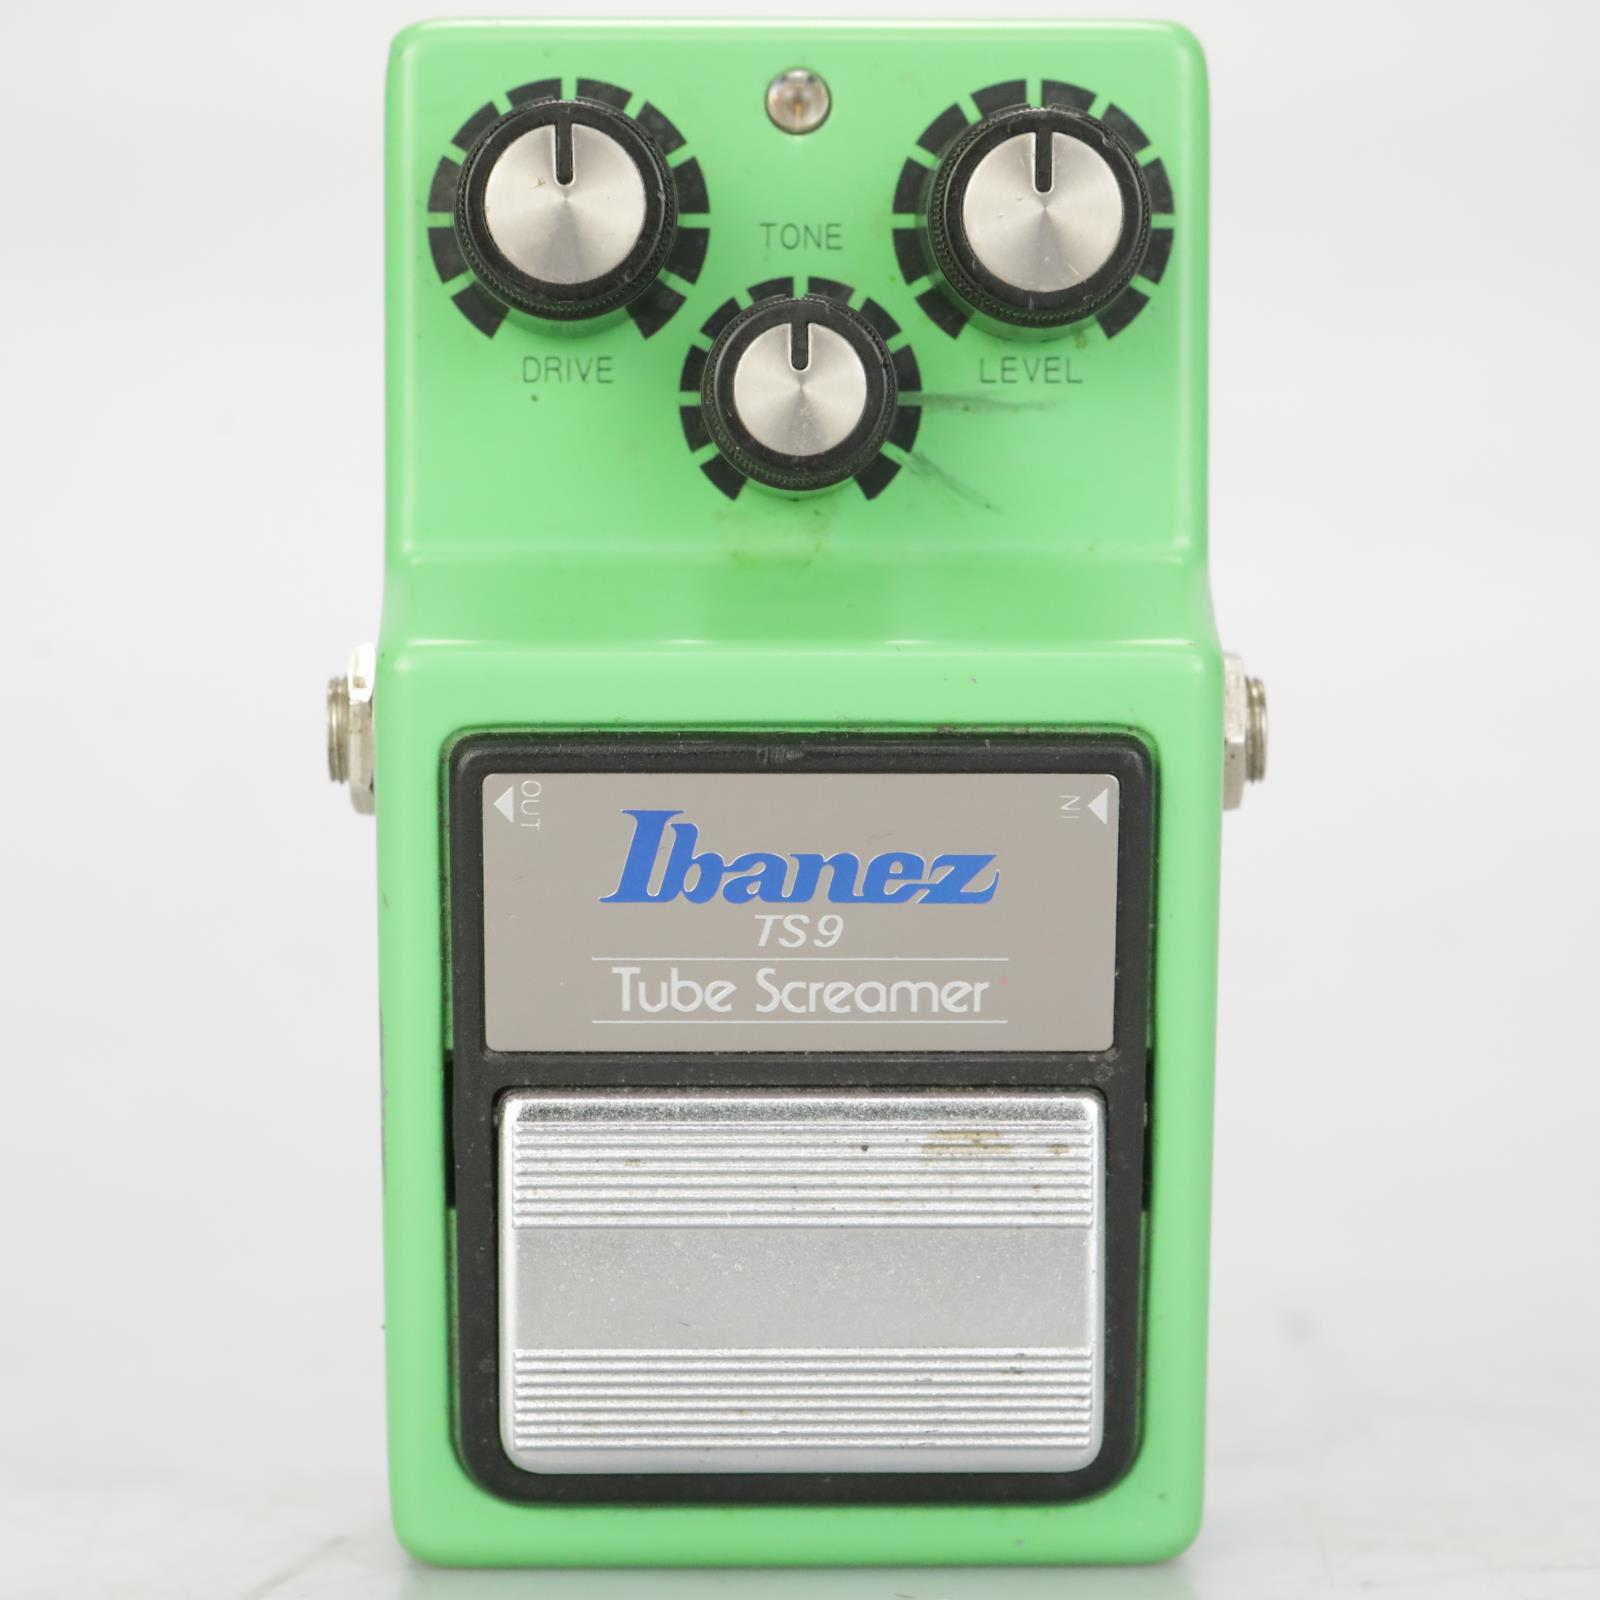 Ibanez TS9 Tube Screamer TA75558P Maxon Overdrive Guitar Effect Pedal #38313